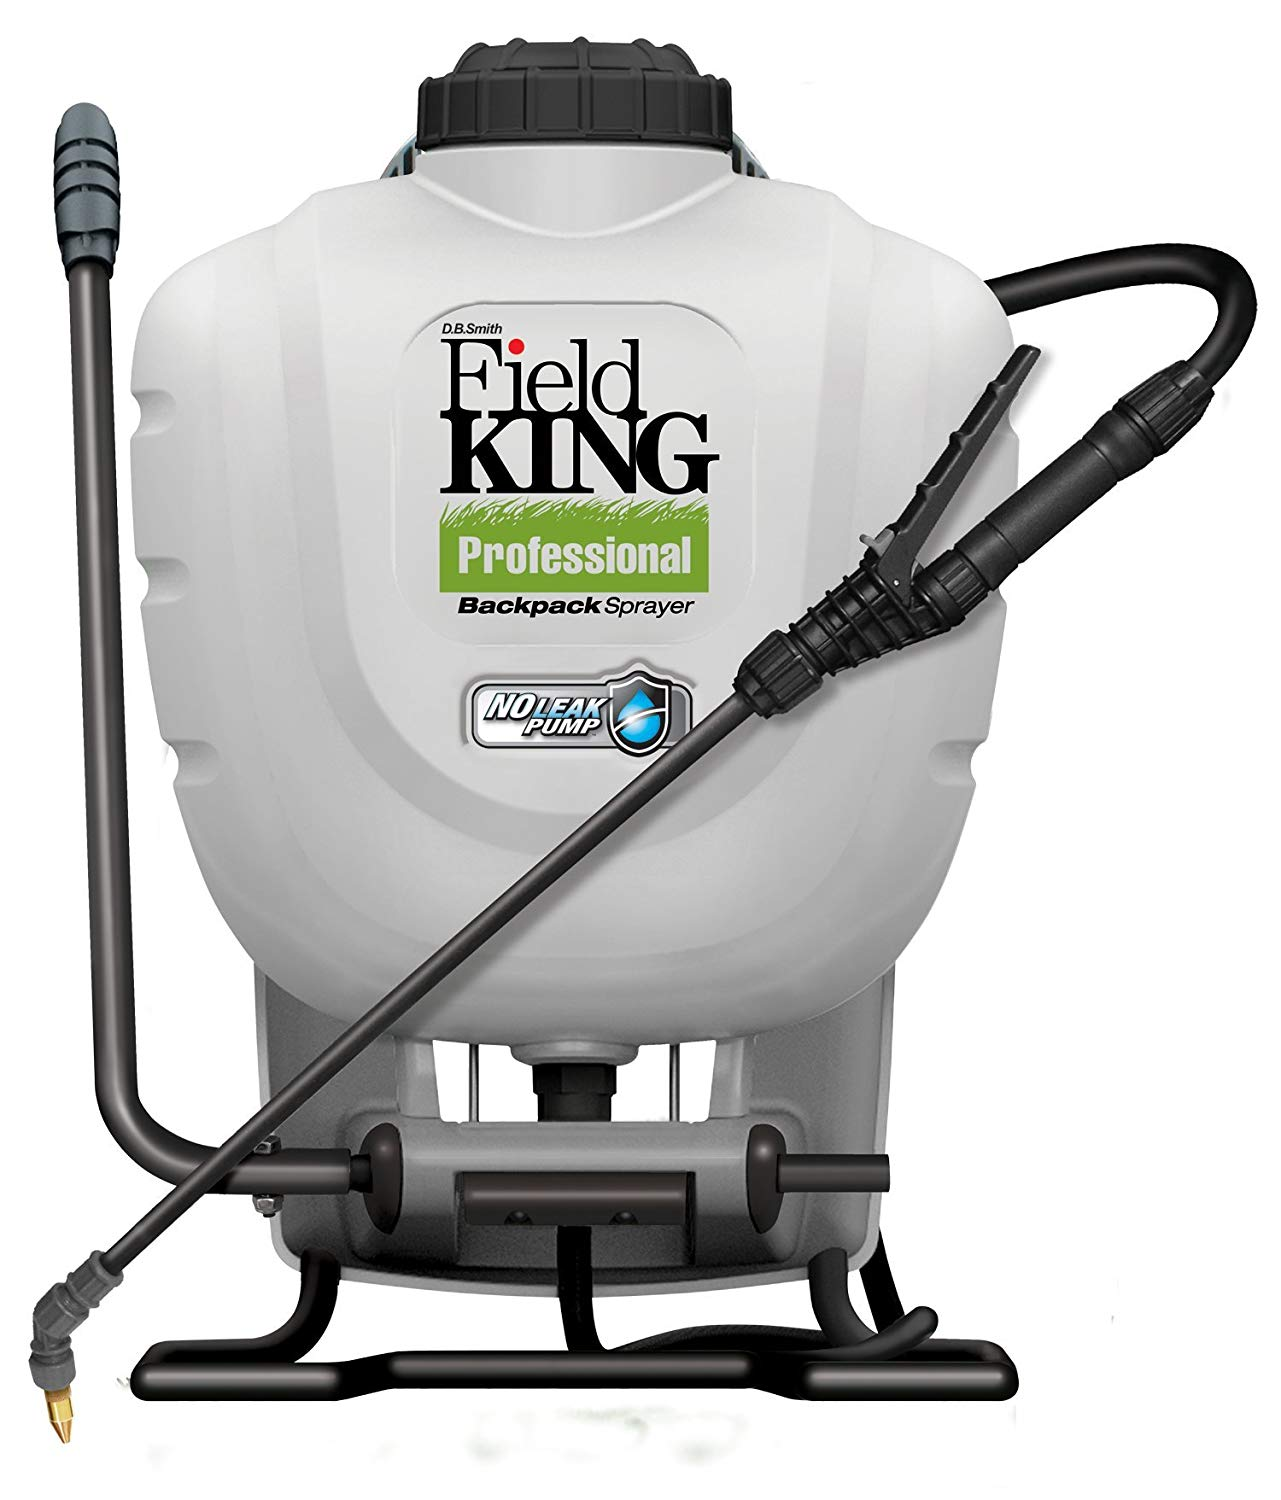 D.B Smith Field King Professional 190328 Backpack Sprayer